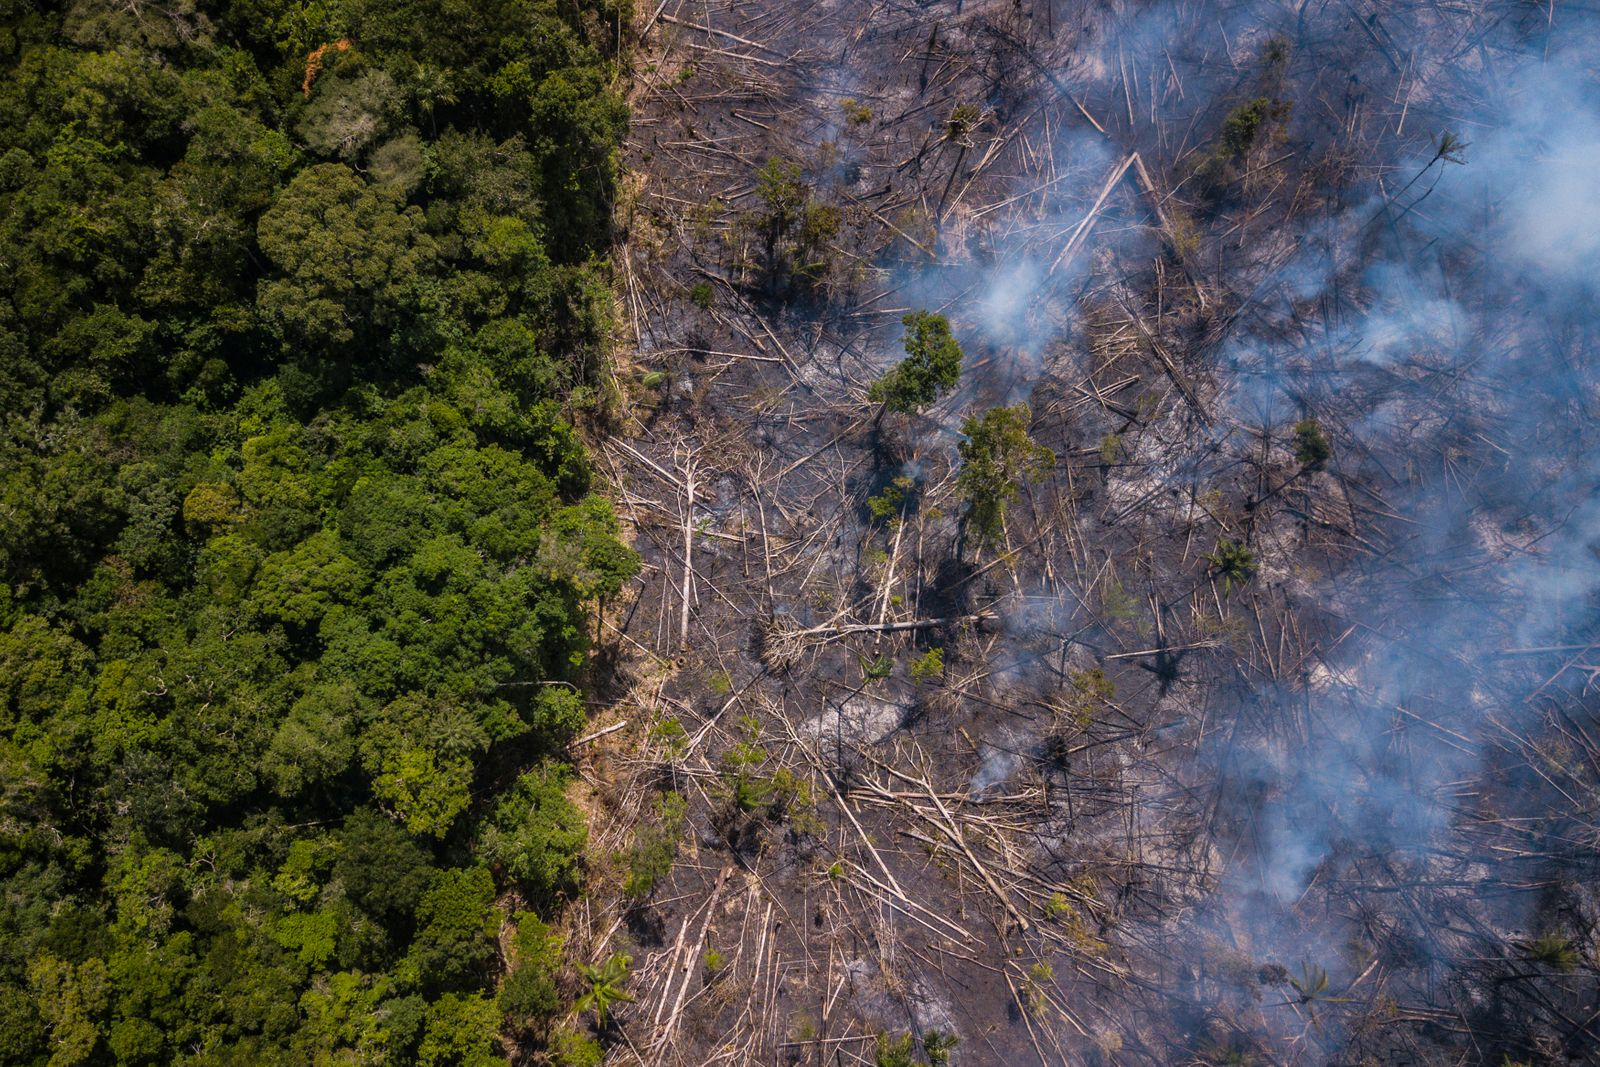 Views Of Amazonian States As Brazil Mine Disaster Prompts Bolsonaro To Rethink Environment